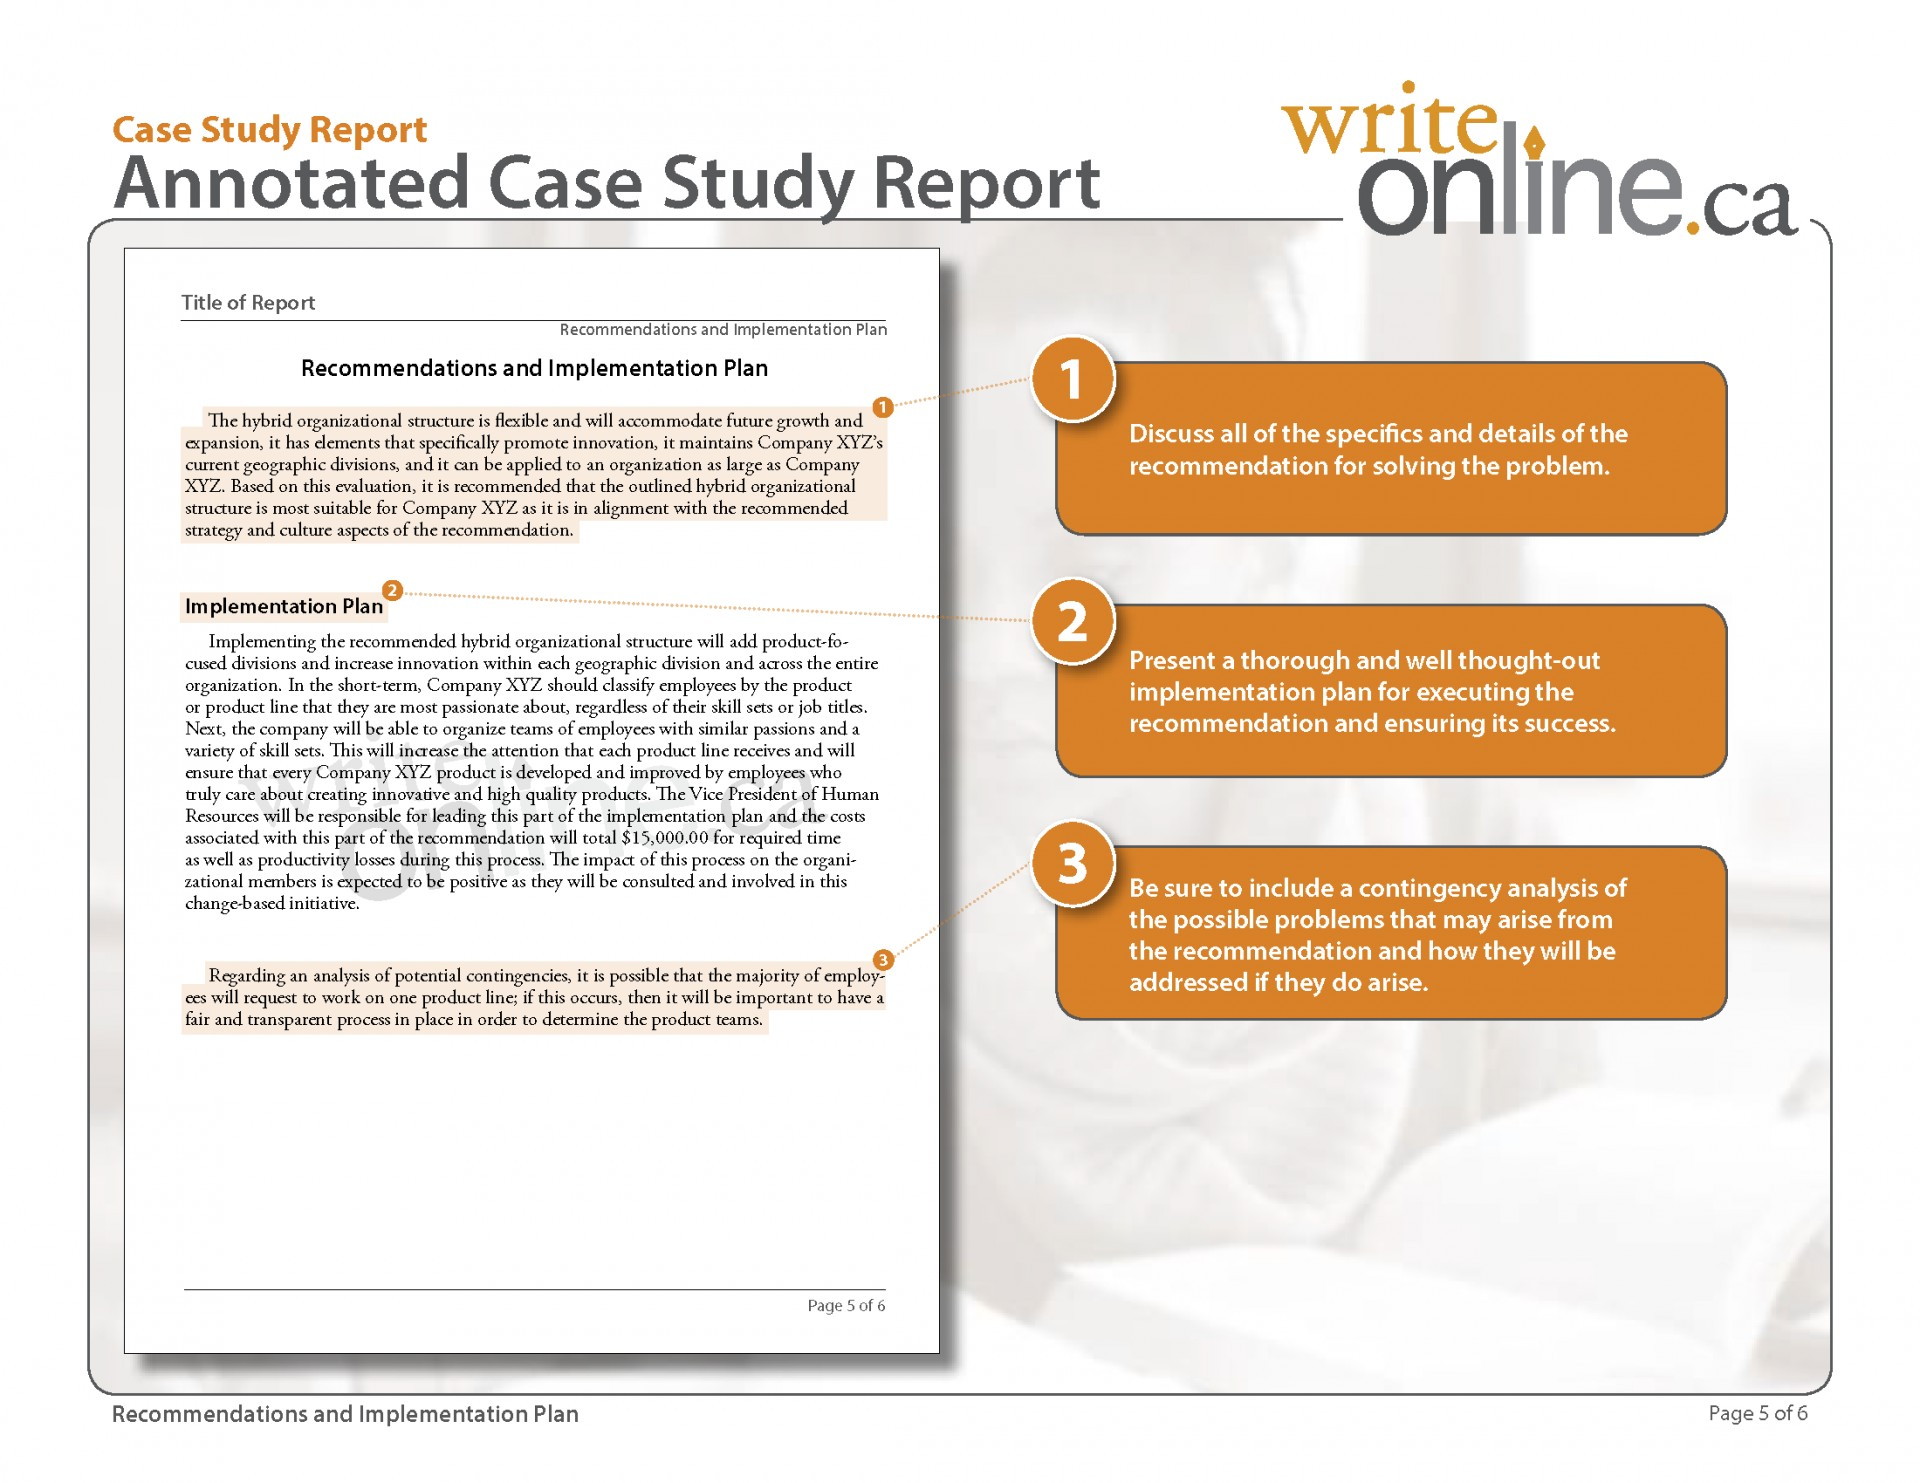 016 Components Of Research Paper In Apa Format Casestudy Annotatedfull Page 5 Stirring A 1920